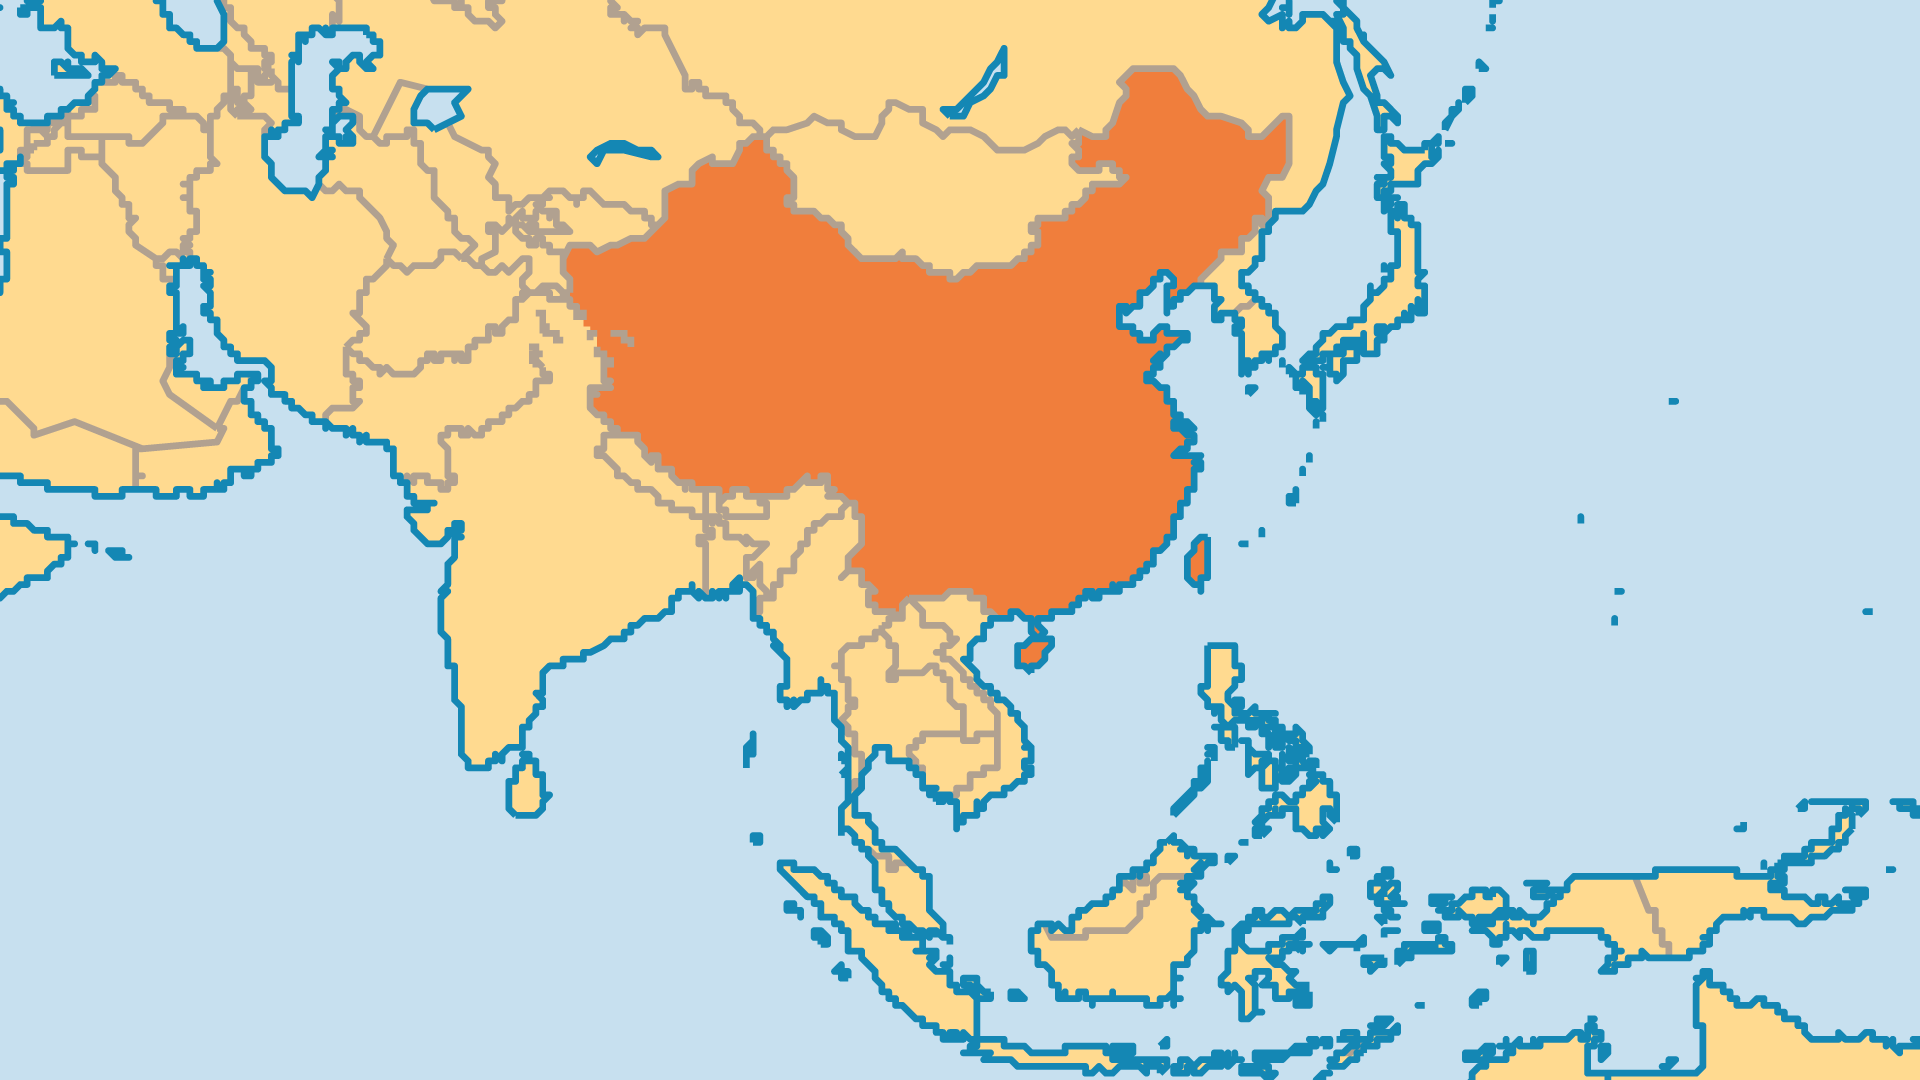 Locator Map for People's Republic of China